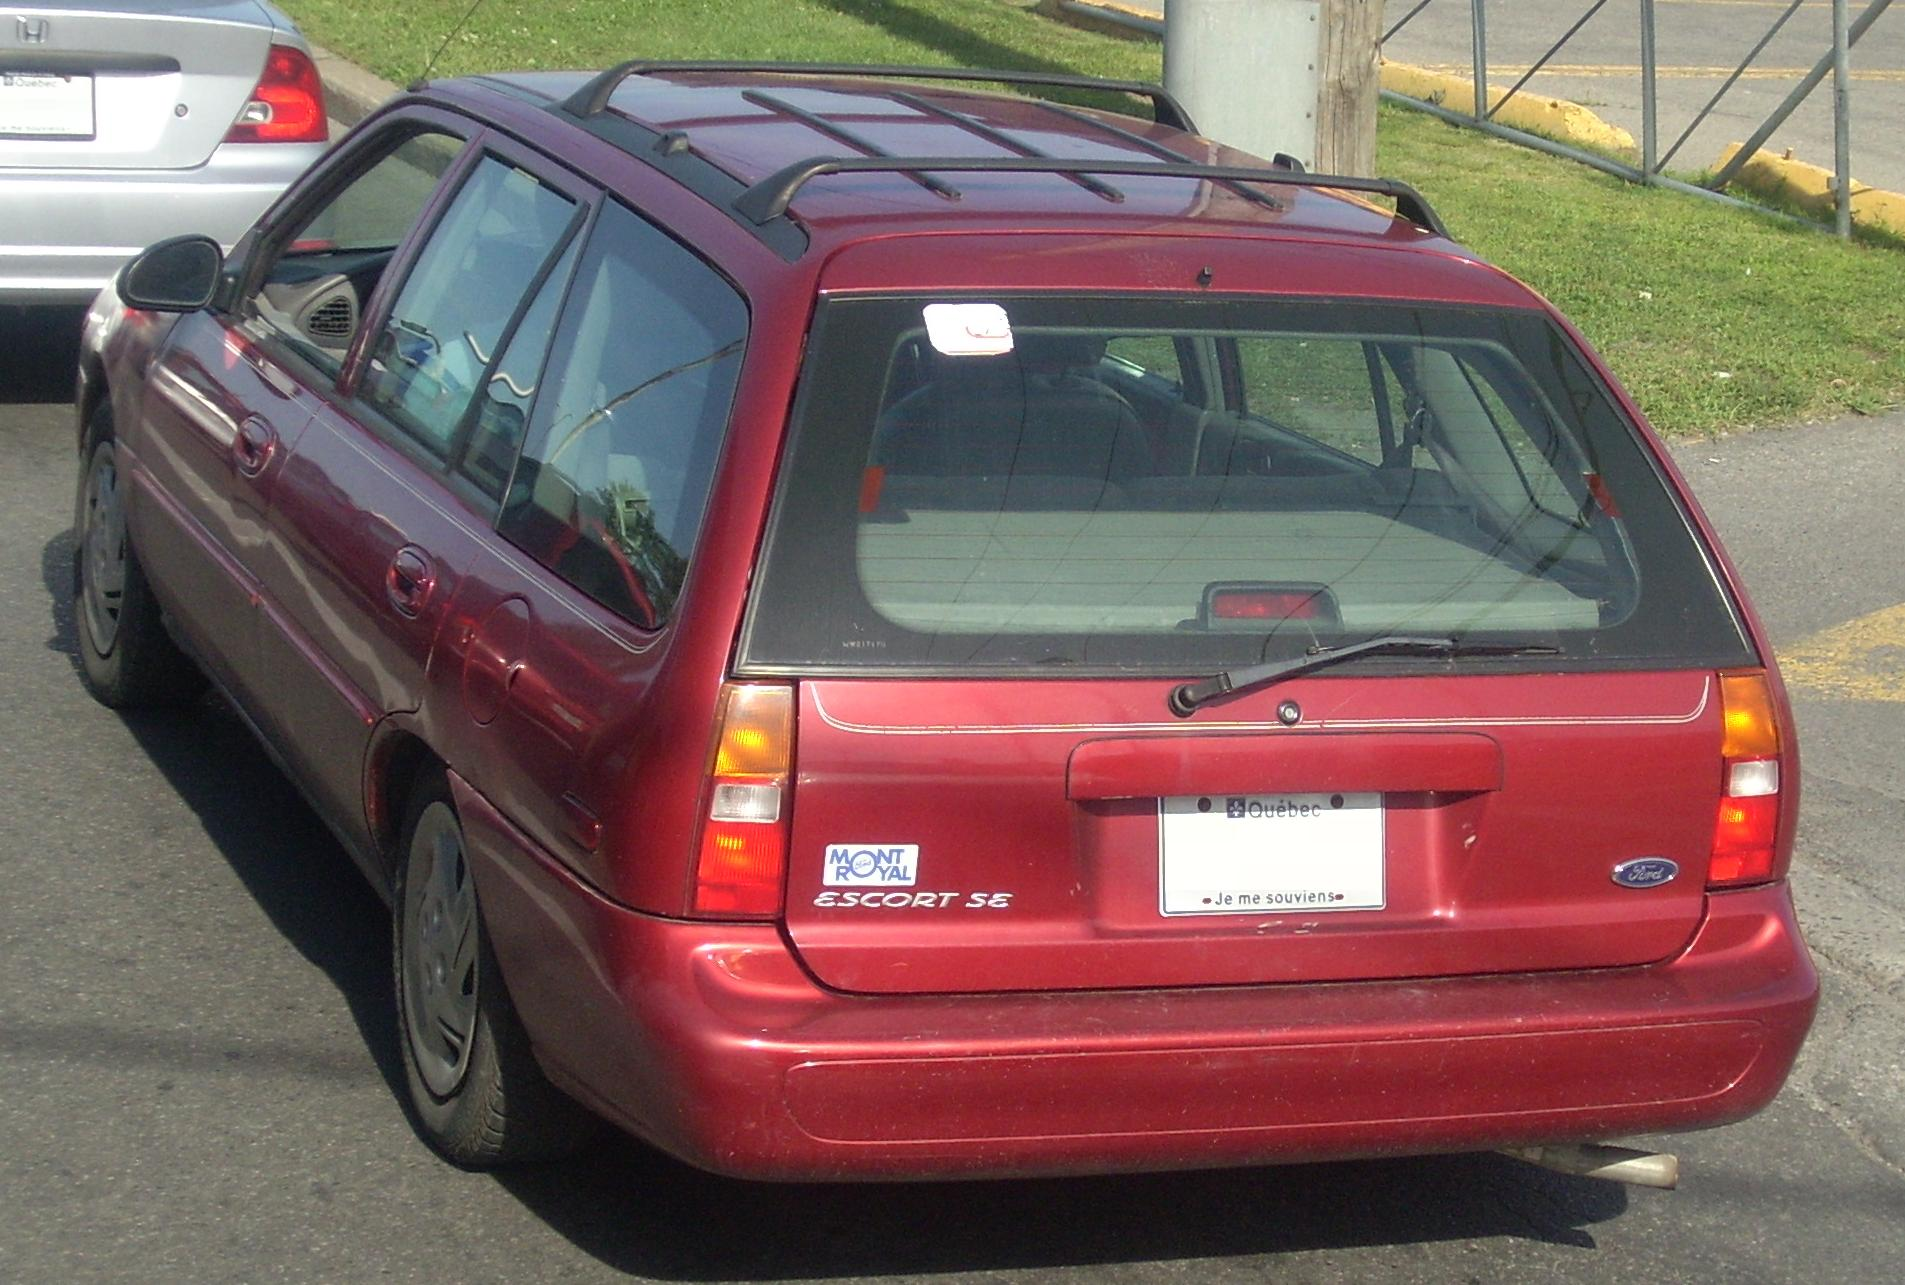 File:1997-1999 Ford Escort SE Wagon.JPG